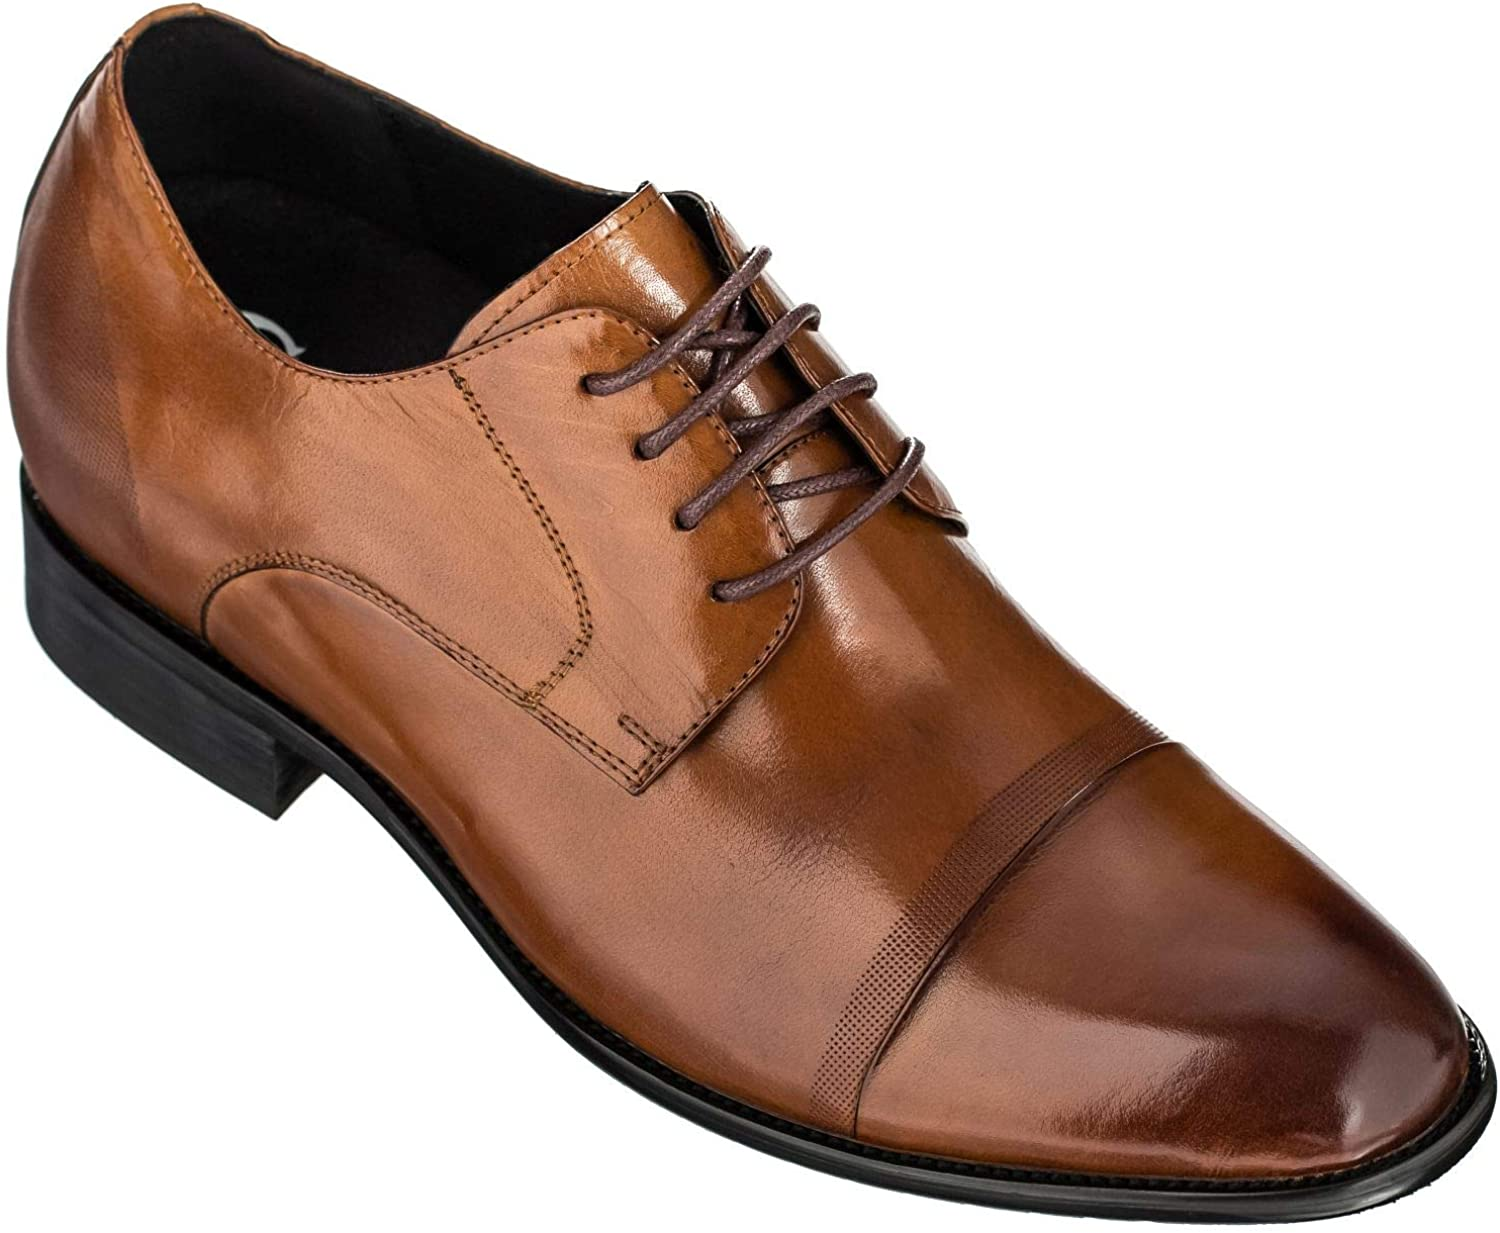 CALTO Men's Invisible Height Increasing Elevator Shoes - Premium Leather Lace-up Formal Oxfords - 2.8 Inches Taller